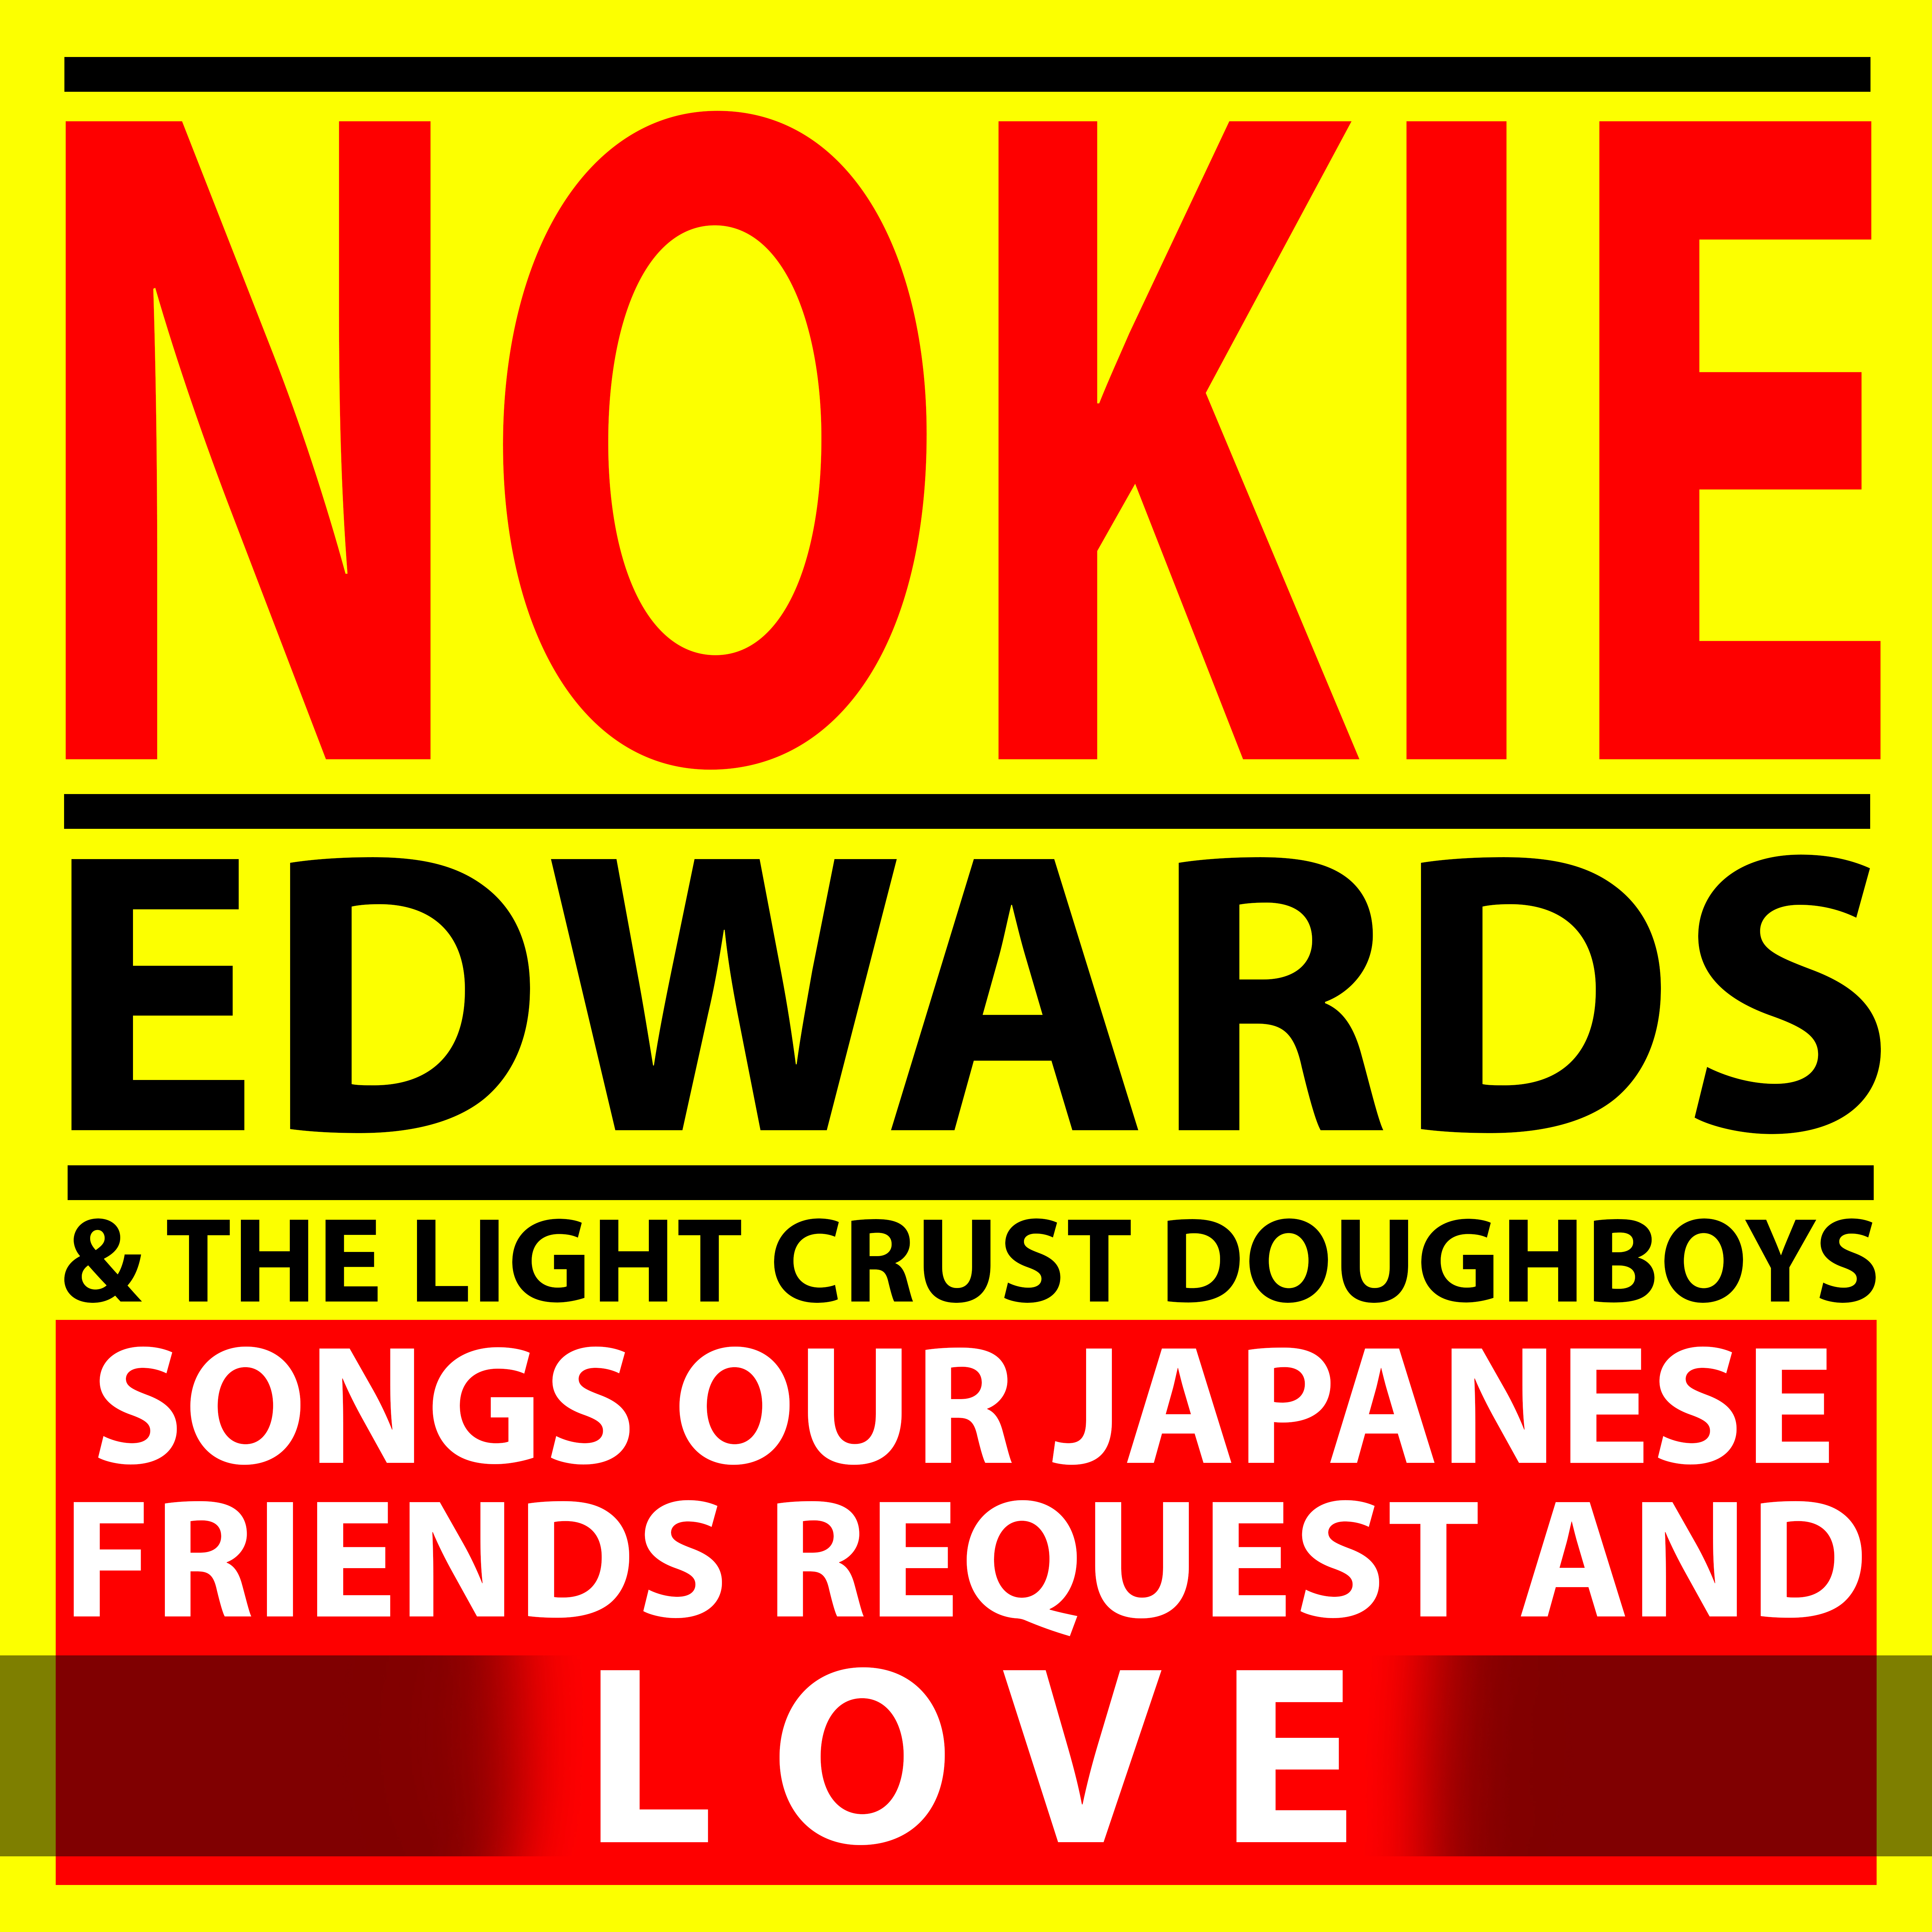 Nokie_Edwards_SONGS_OUR_JAPANESE_FRIENDS_REQUEST_AND_LOVE